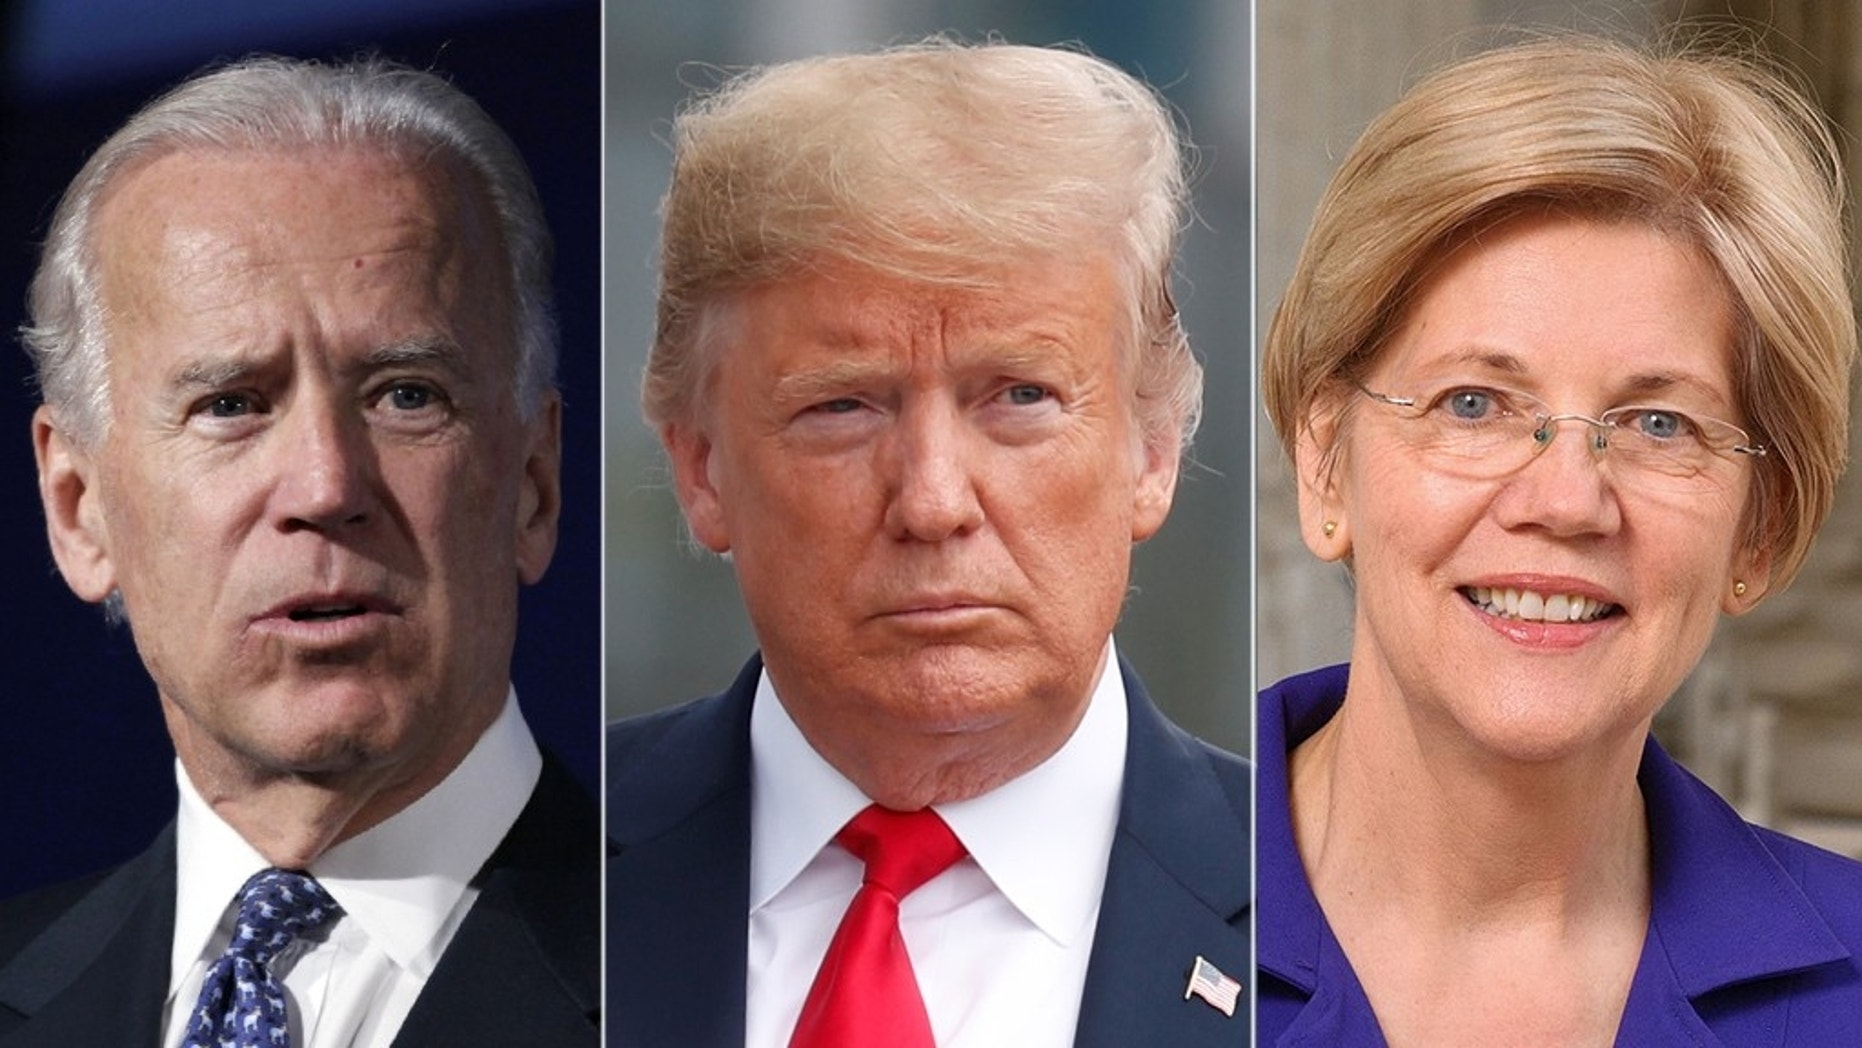 Trump sees no challenger who could beat him in 2020 (foxnews.com)